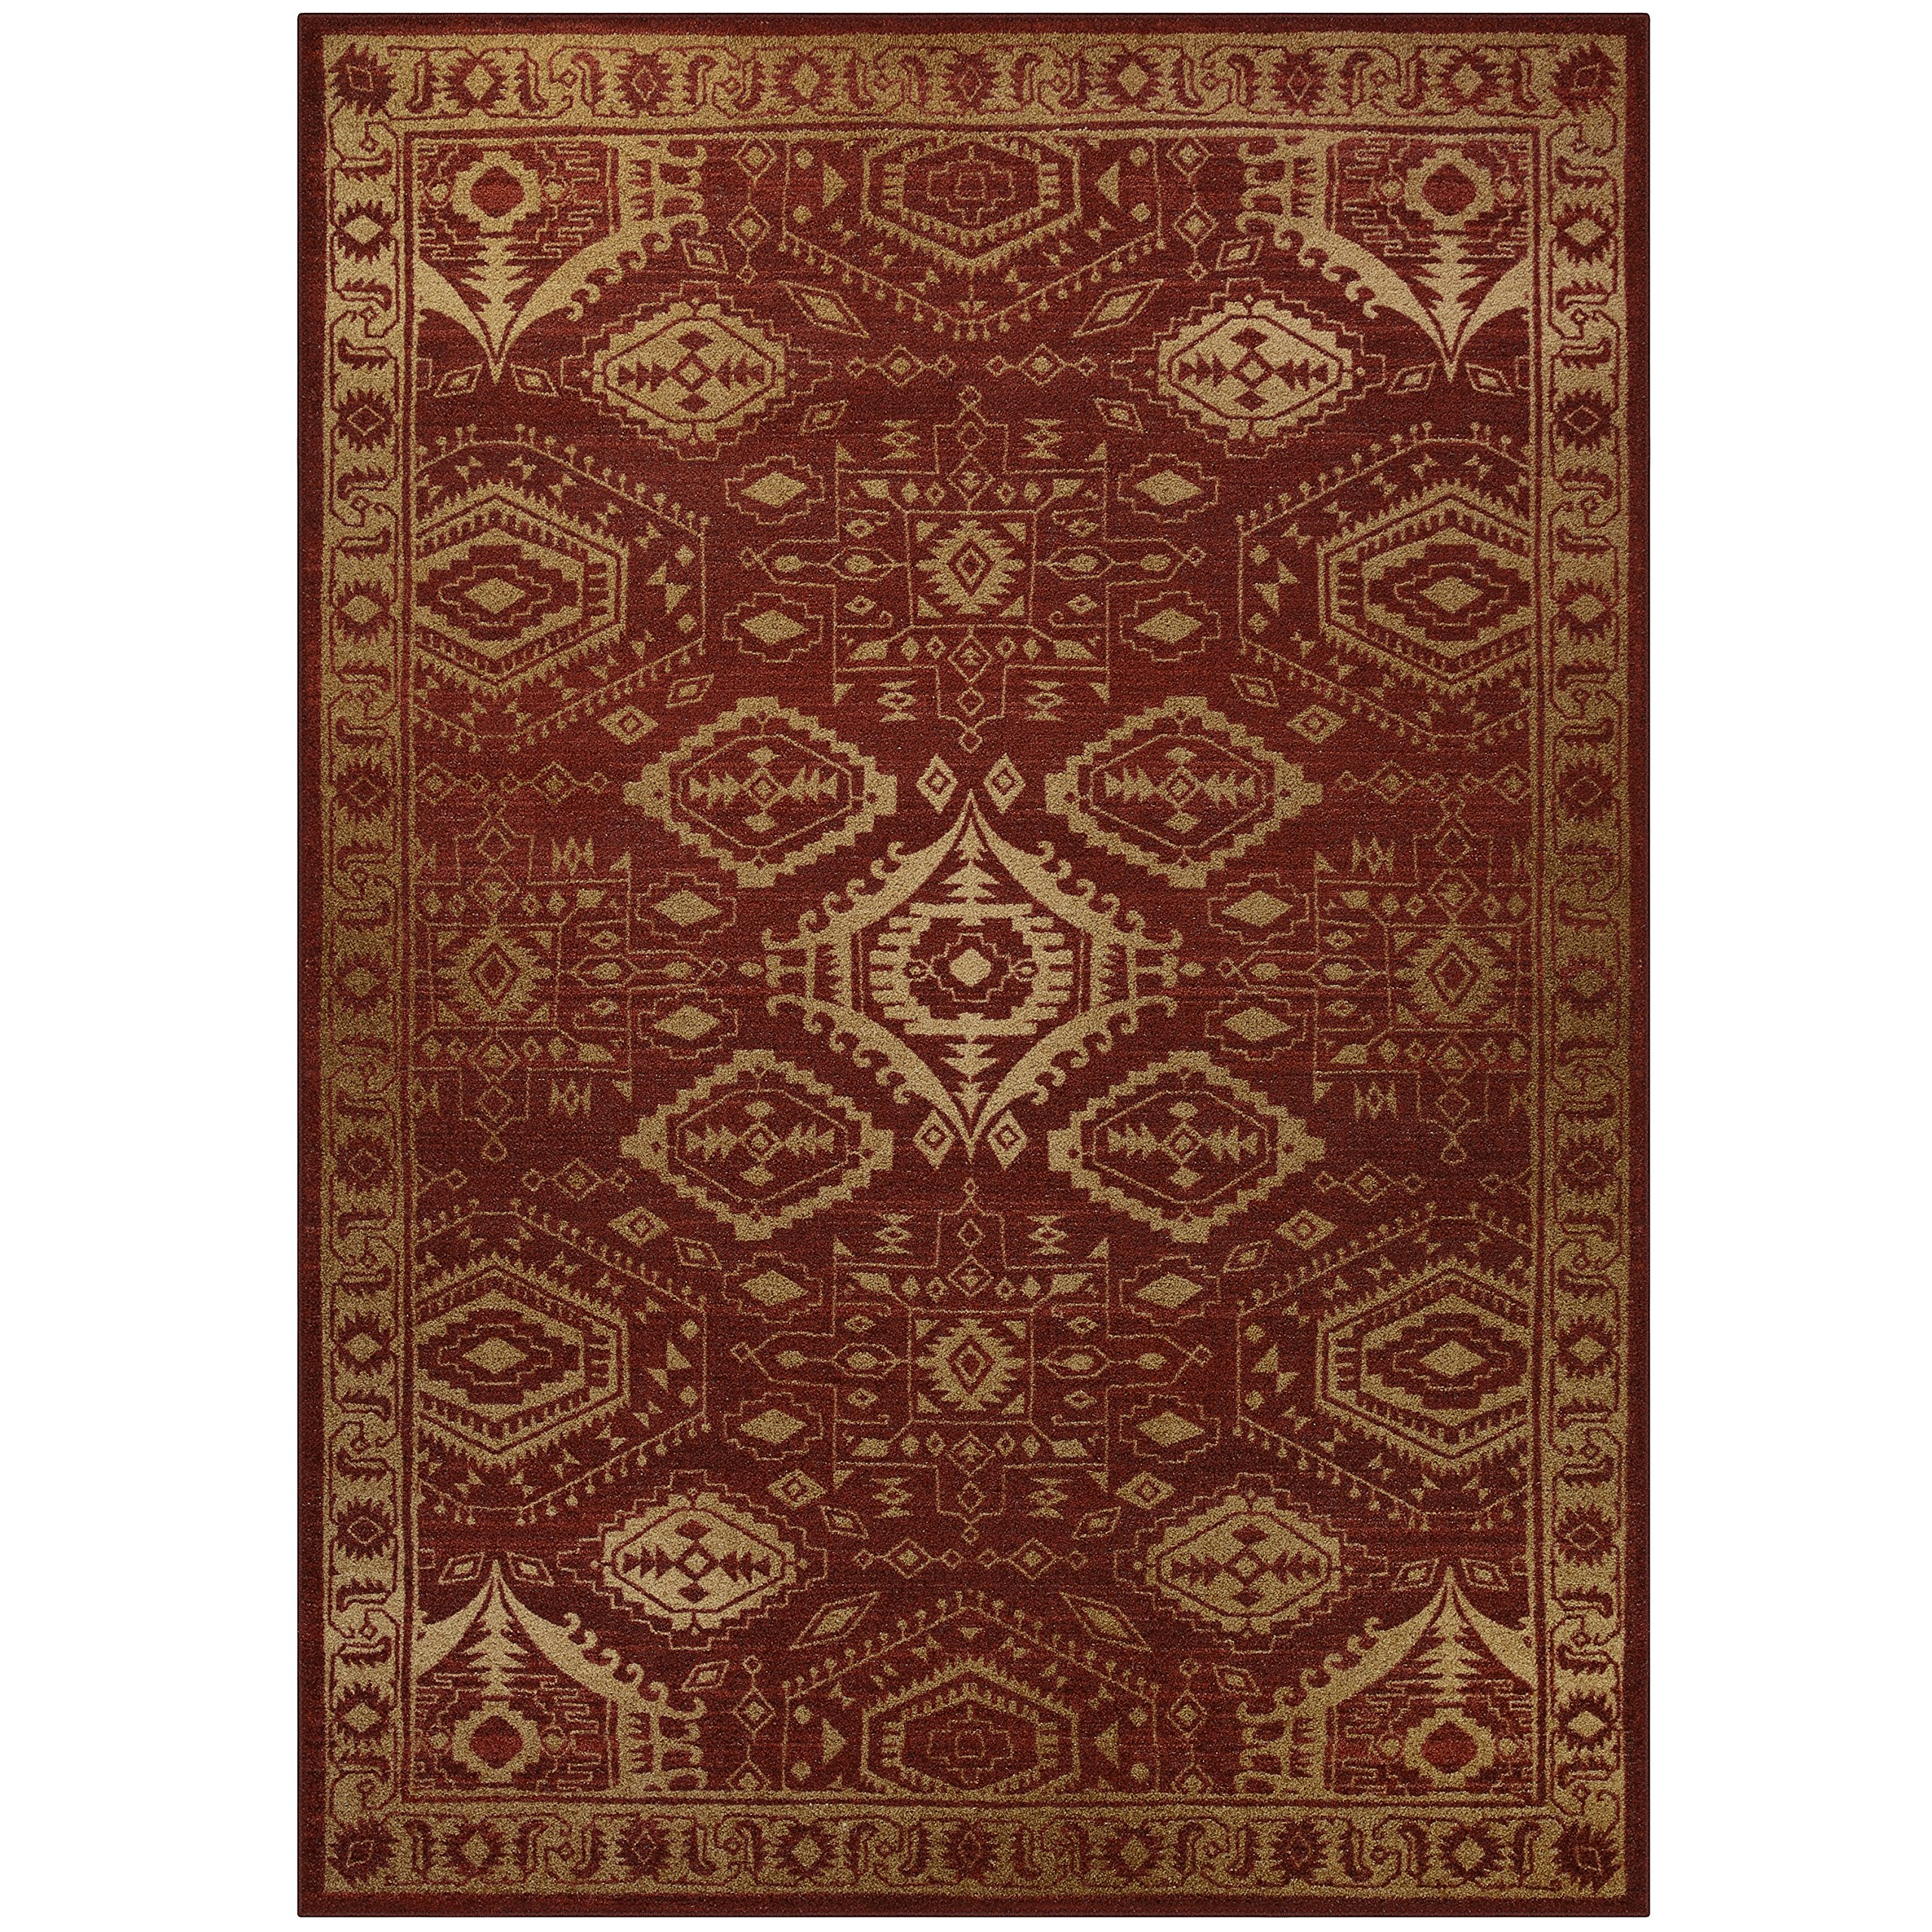 Area Rugs, Maples Rugs [Made in USA][Georgina] 7' x 10' Non Slip Padded Large Rug for Living Room, Bedroom, and Dining Room - Red/Gold